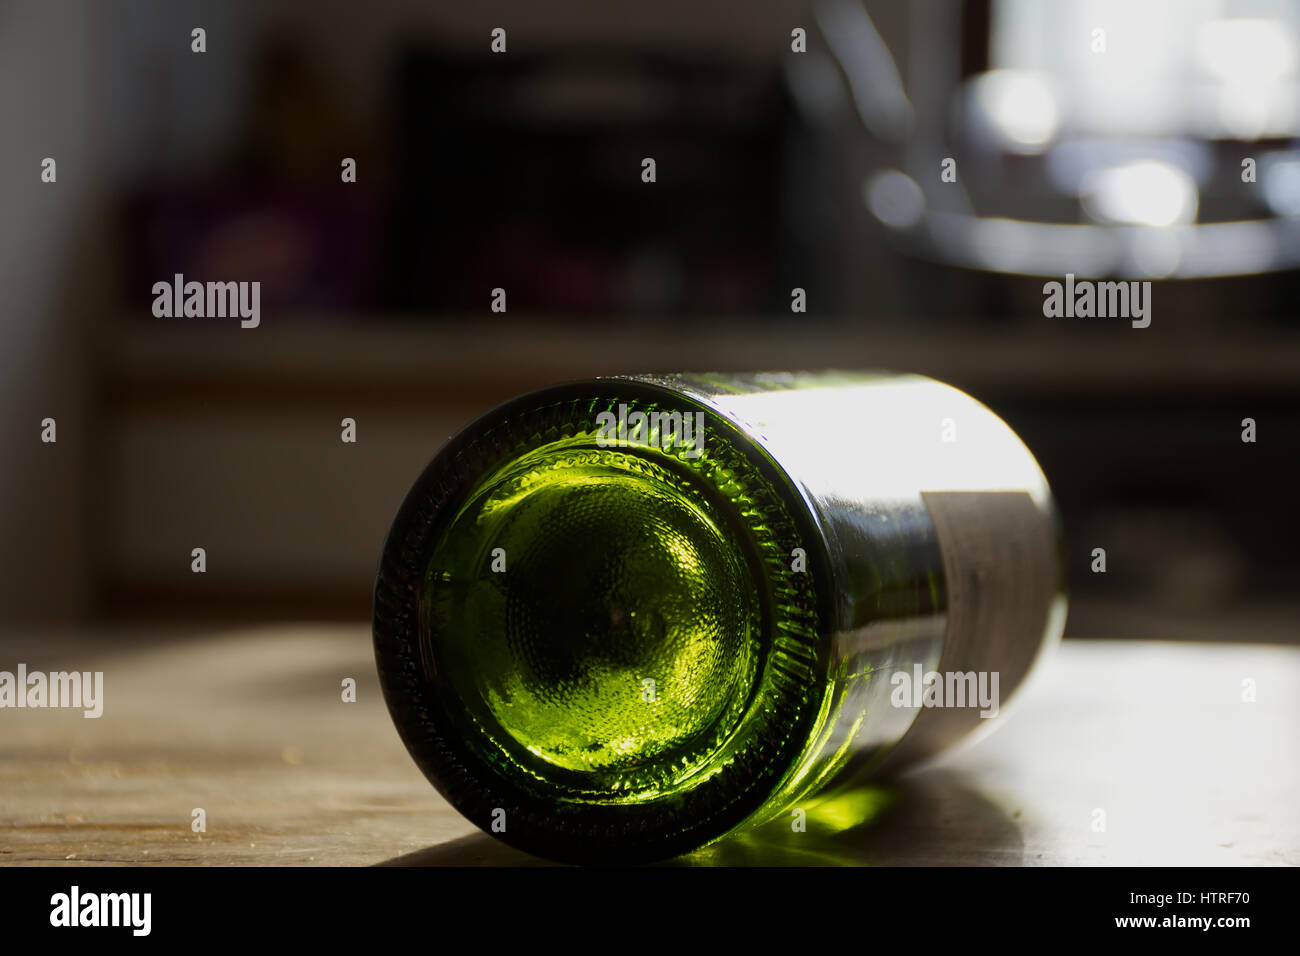 Wine bottle rolling on table after house party in university students accomodation. - Stock Image